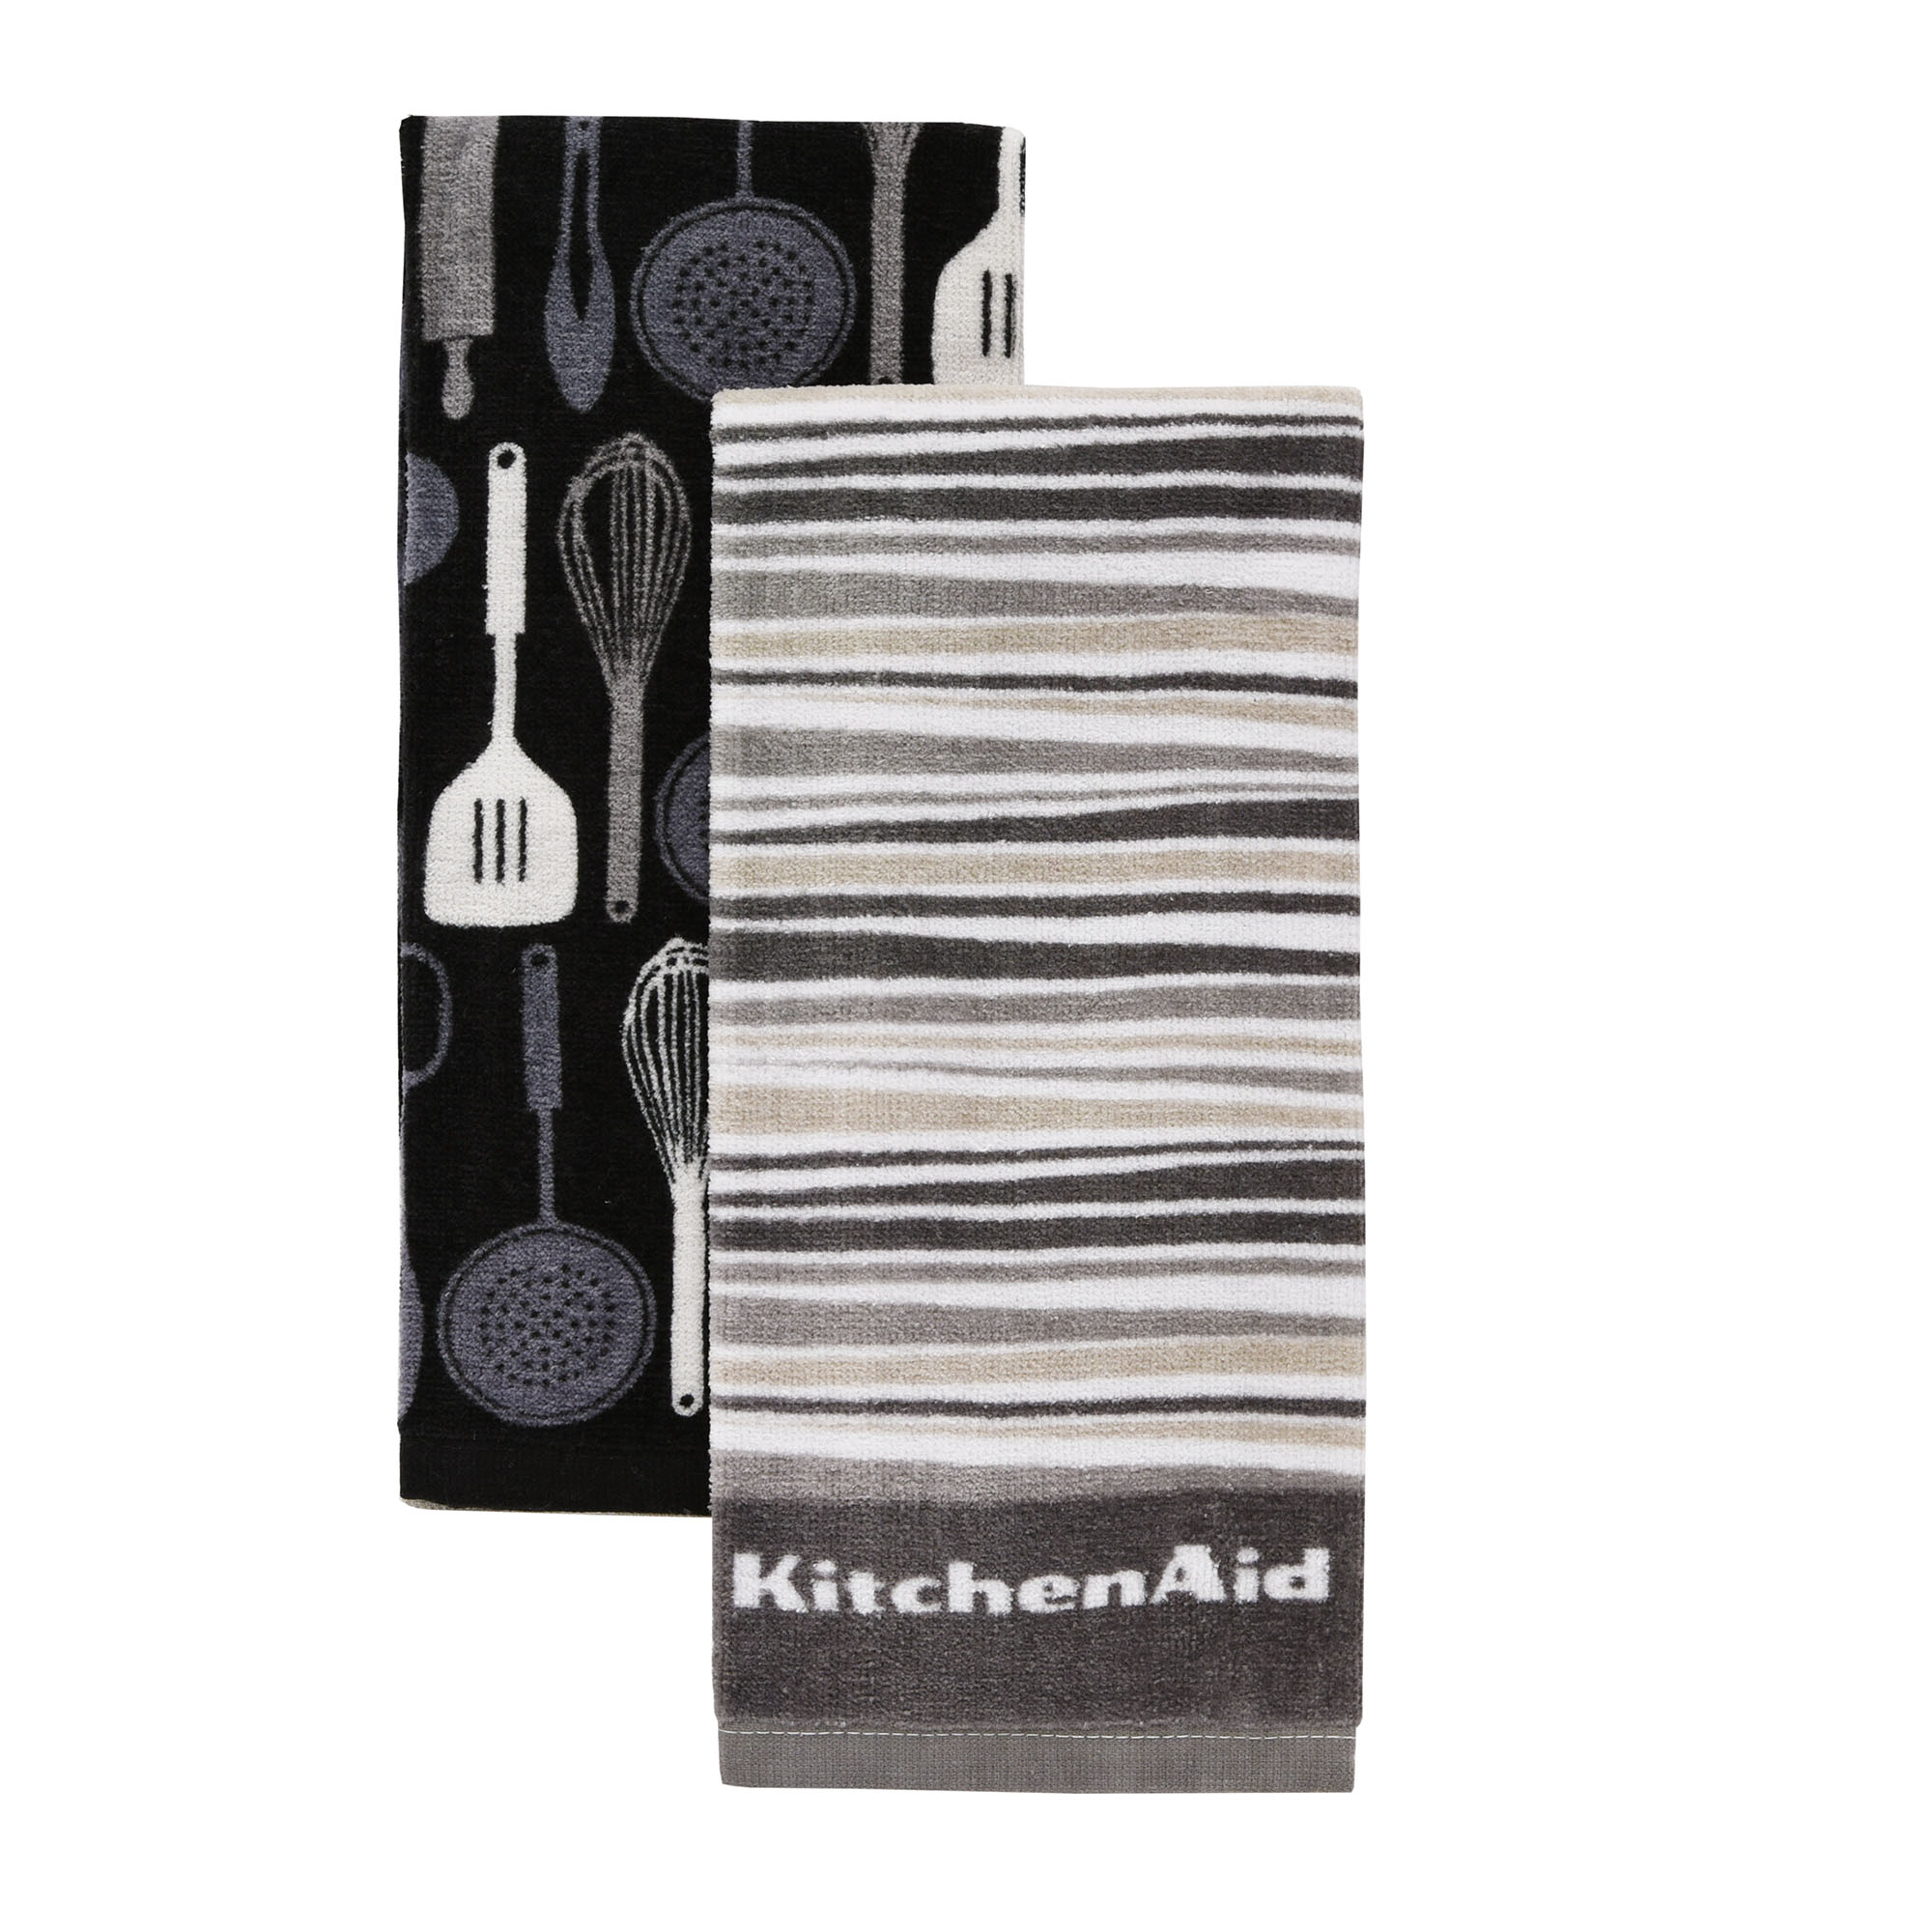 KitchenAid Utensils & Stripe Kitchen Towels, Set of 2, Grey by TOWN & COUNTRY